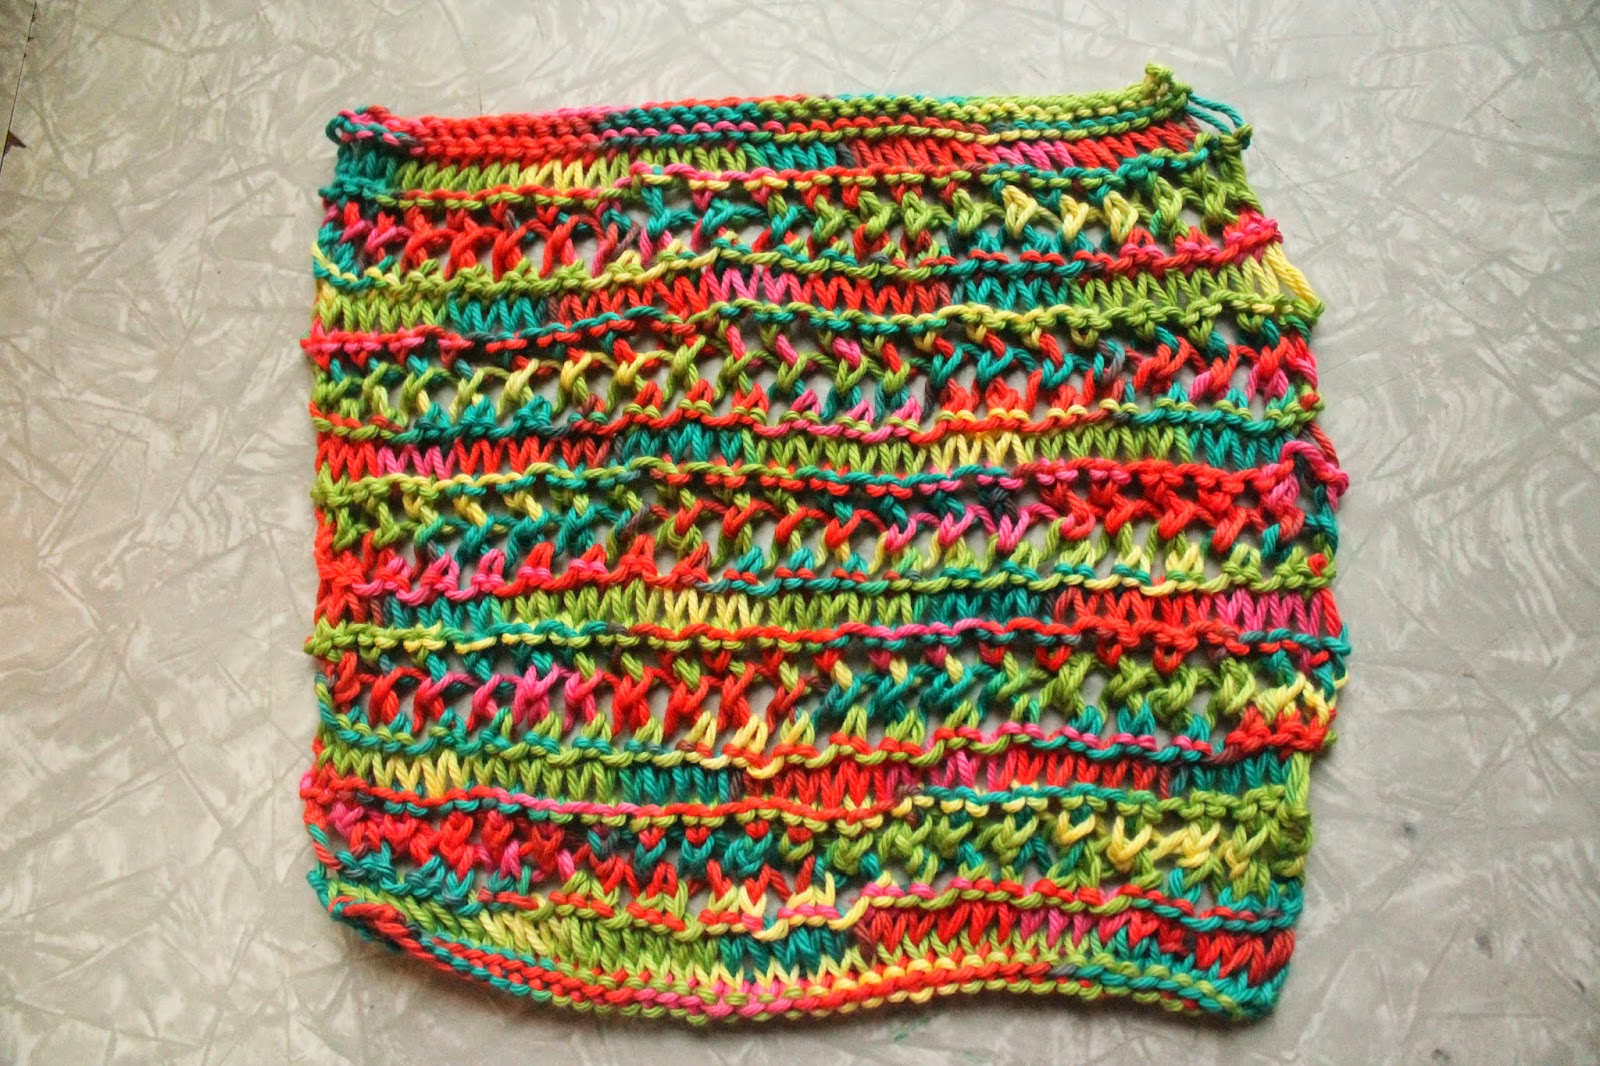 Knitted Dishcloth Patterns For Variegated Yarn : Everyday Life at Leisure: Weekly Dishcloth: Knitting the Variegated Dishcloth